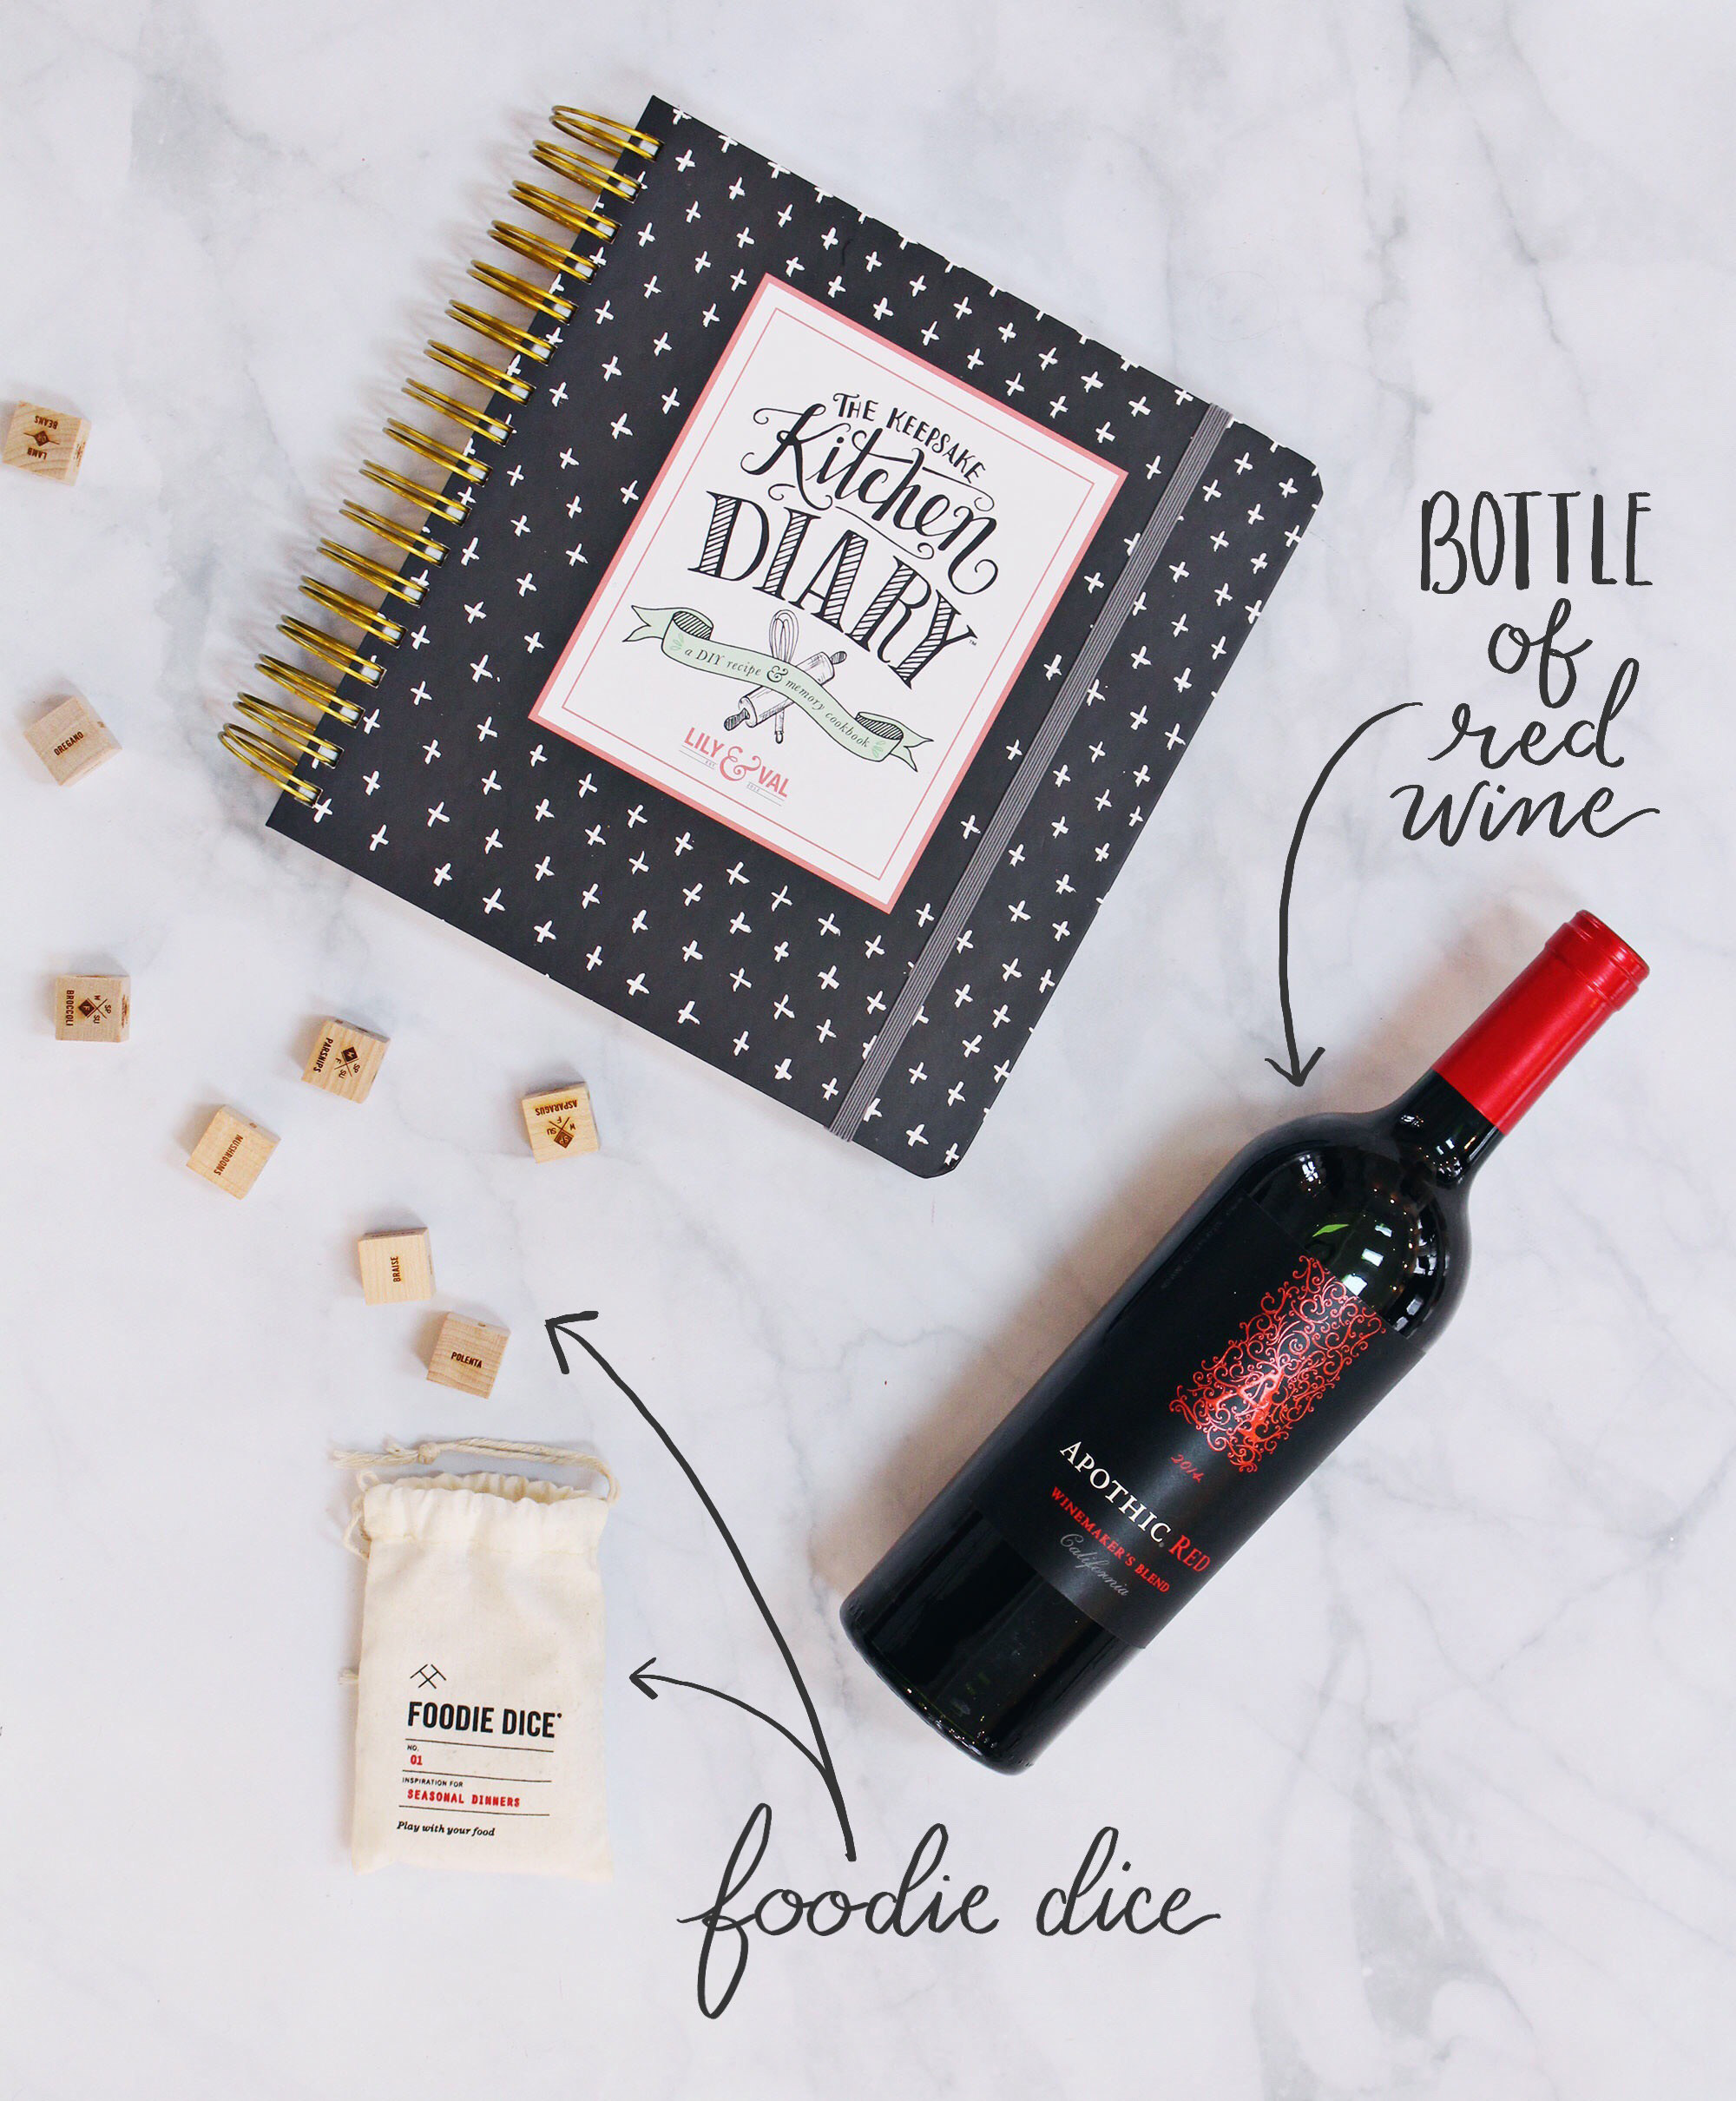 For the new couple, give them a gift of a night in. Using Foodie Dice & The Keepsake Kitchen Diary, they can create new recipes and memories to last forever.